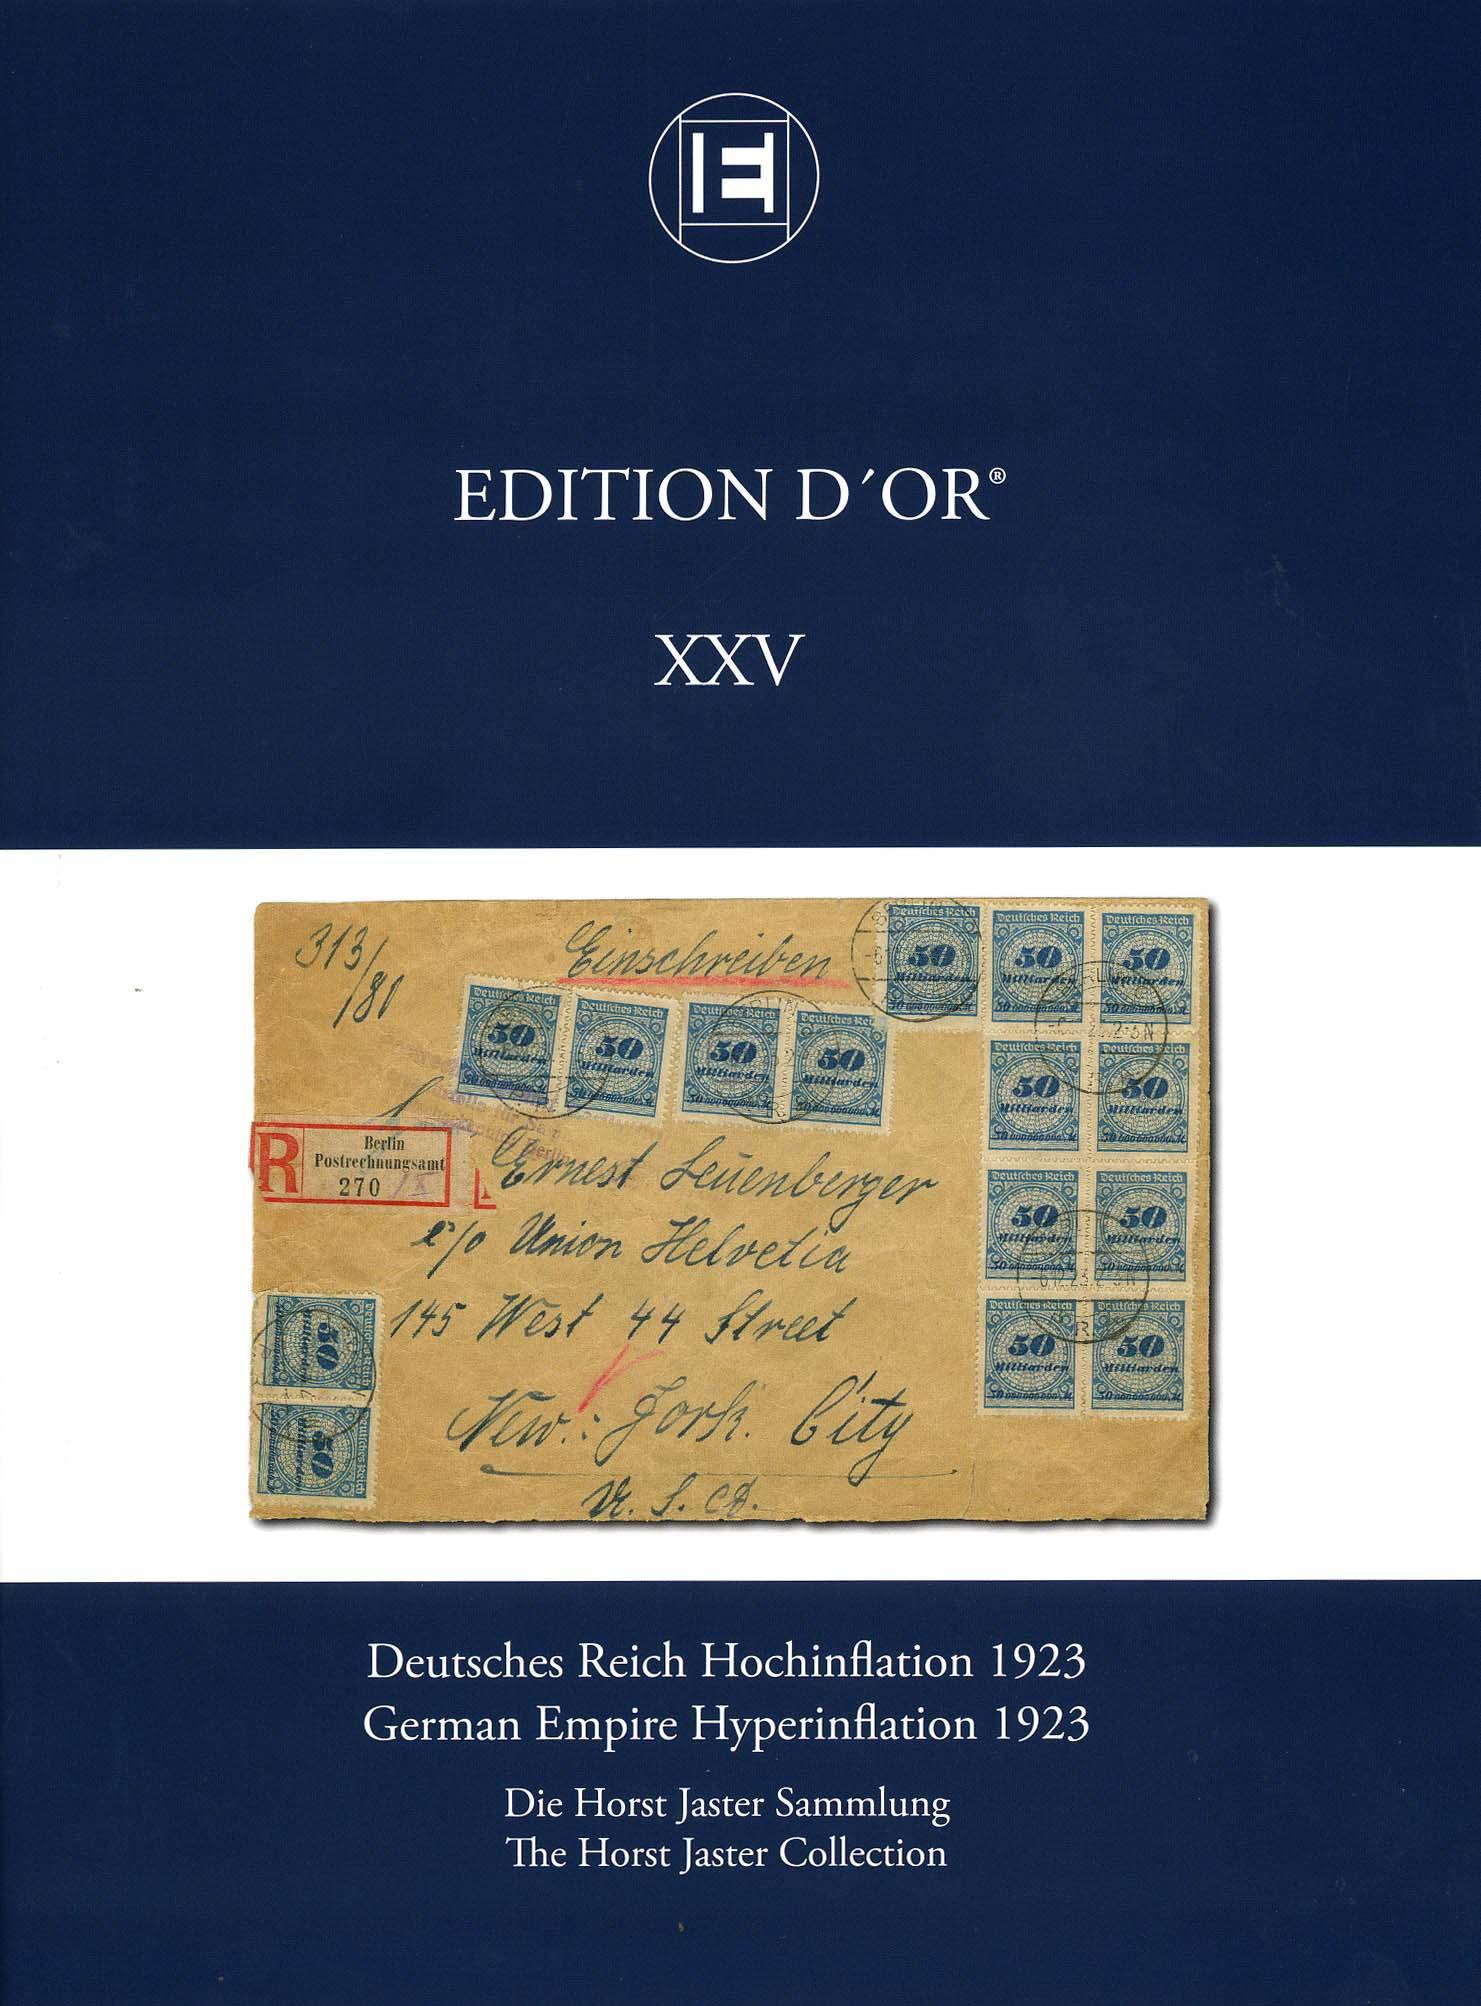 Vol. 25: German Empire Hyperinflation 1923 • The Horst Jaster Collection